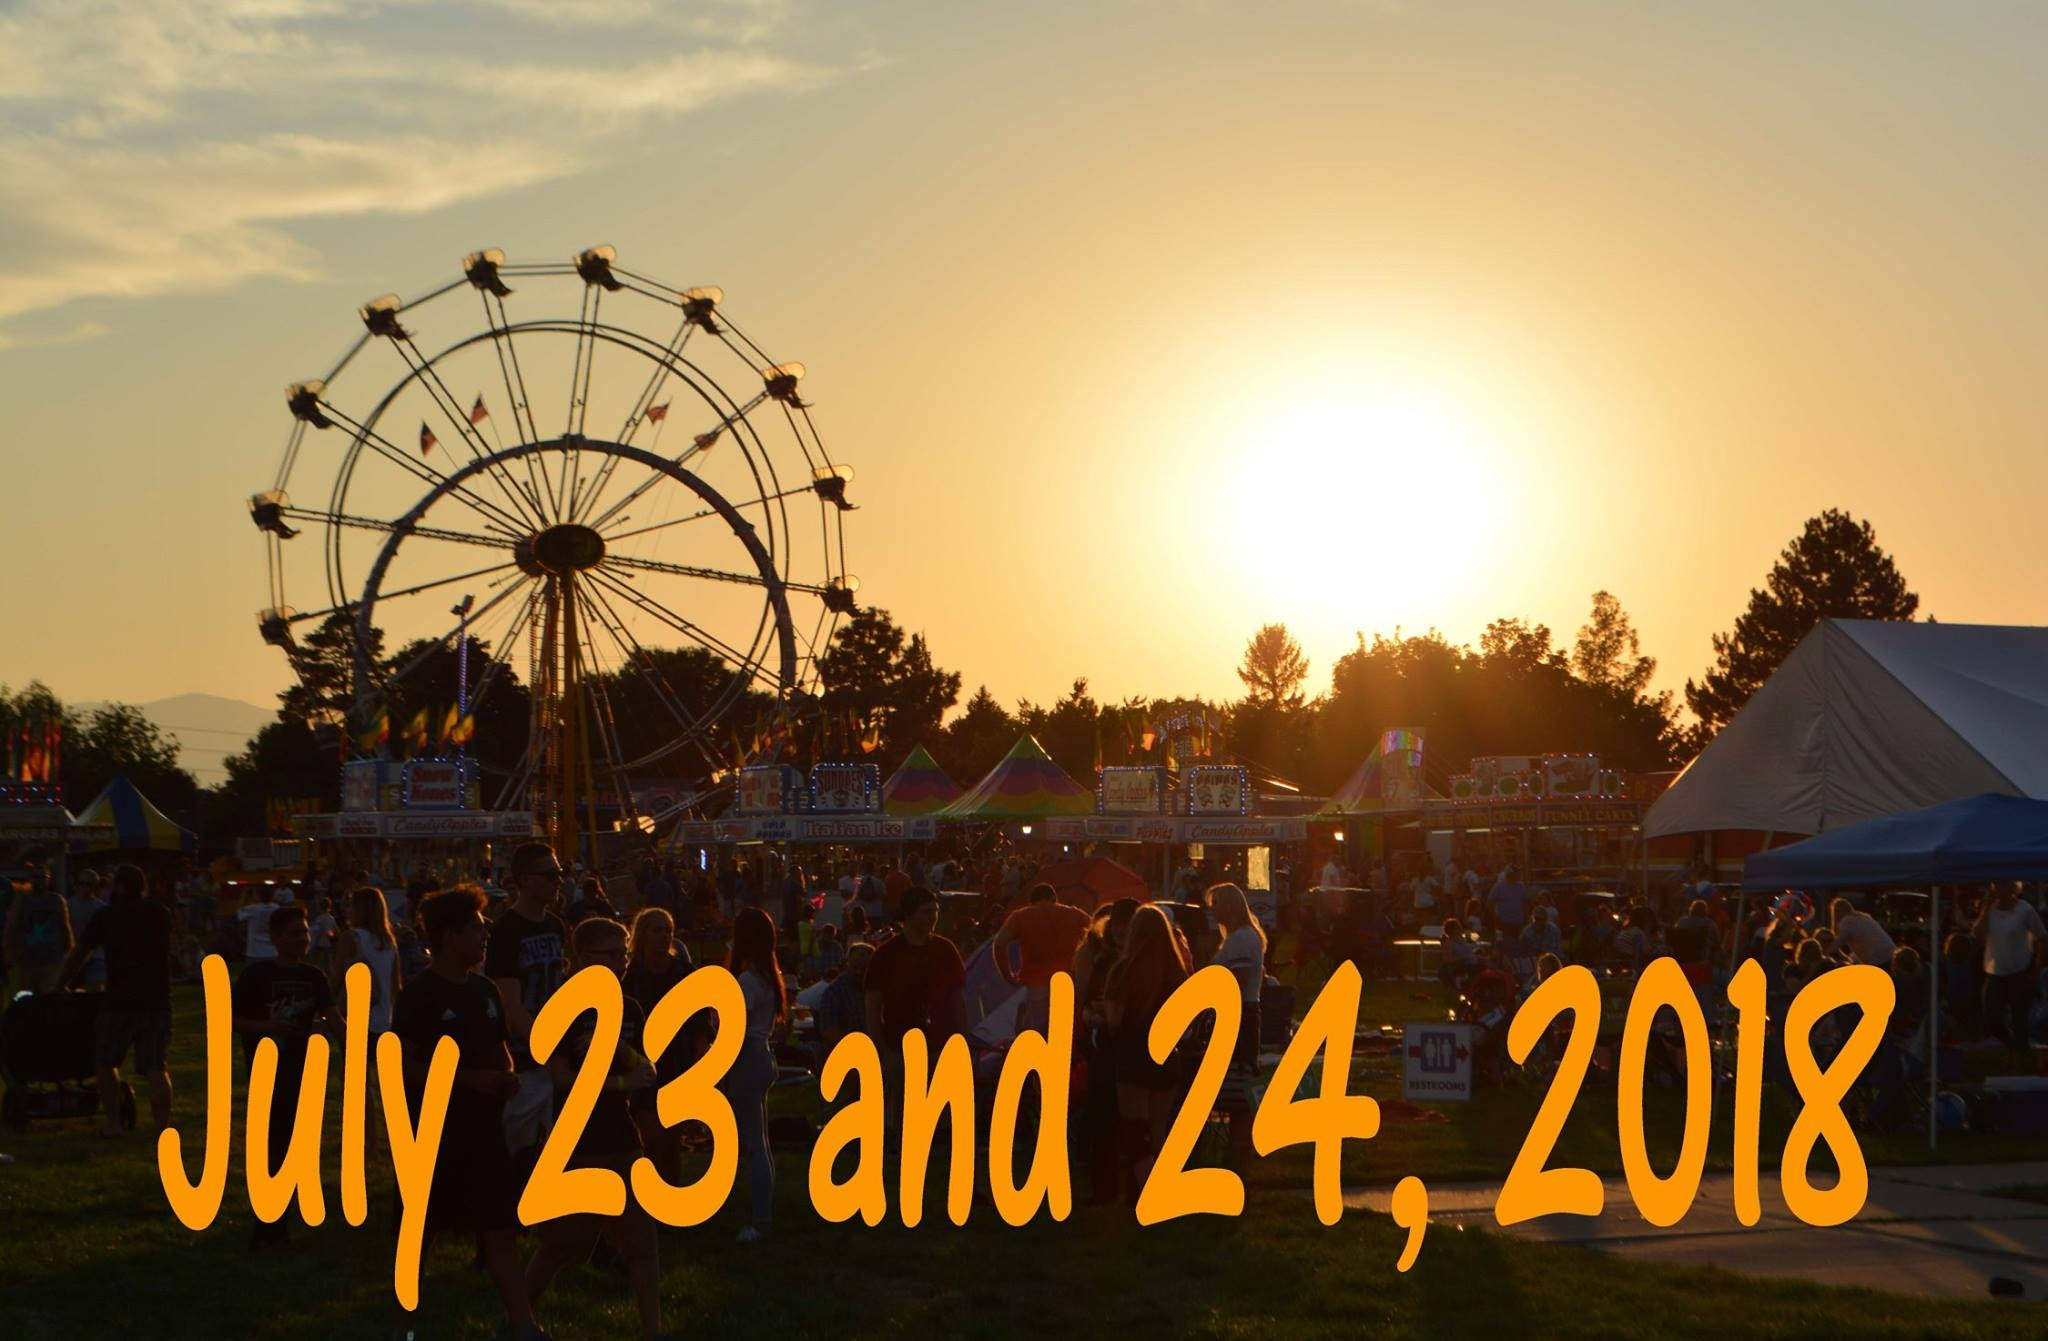 Are you ready for Butlerville Days on July 23rd and 24th? Remember to apply for the activities online.